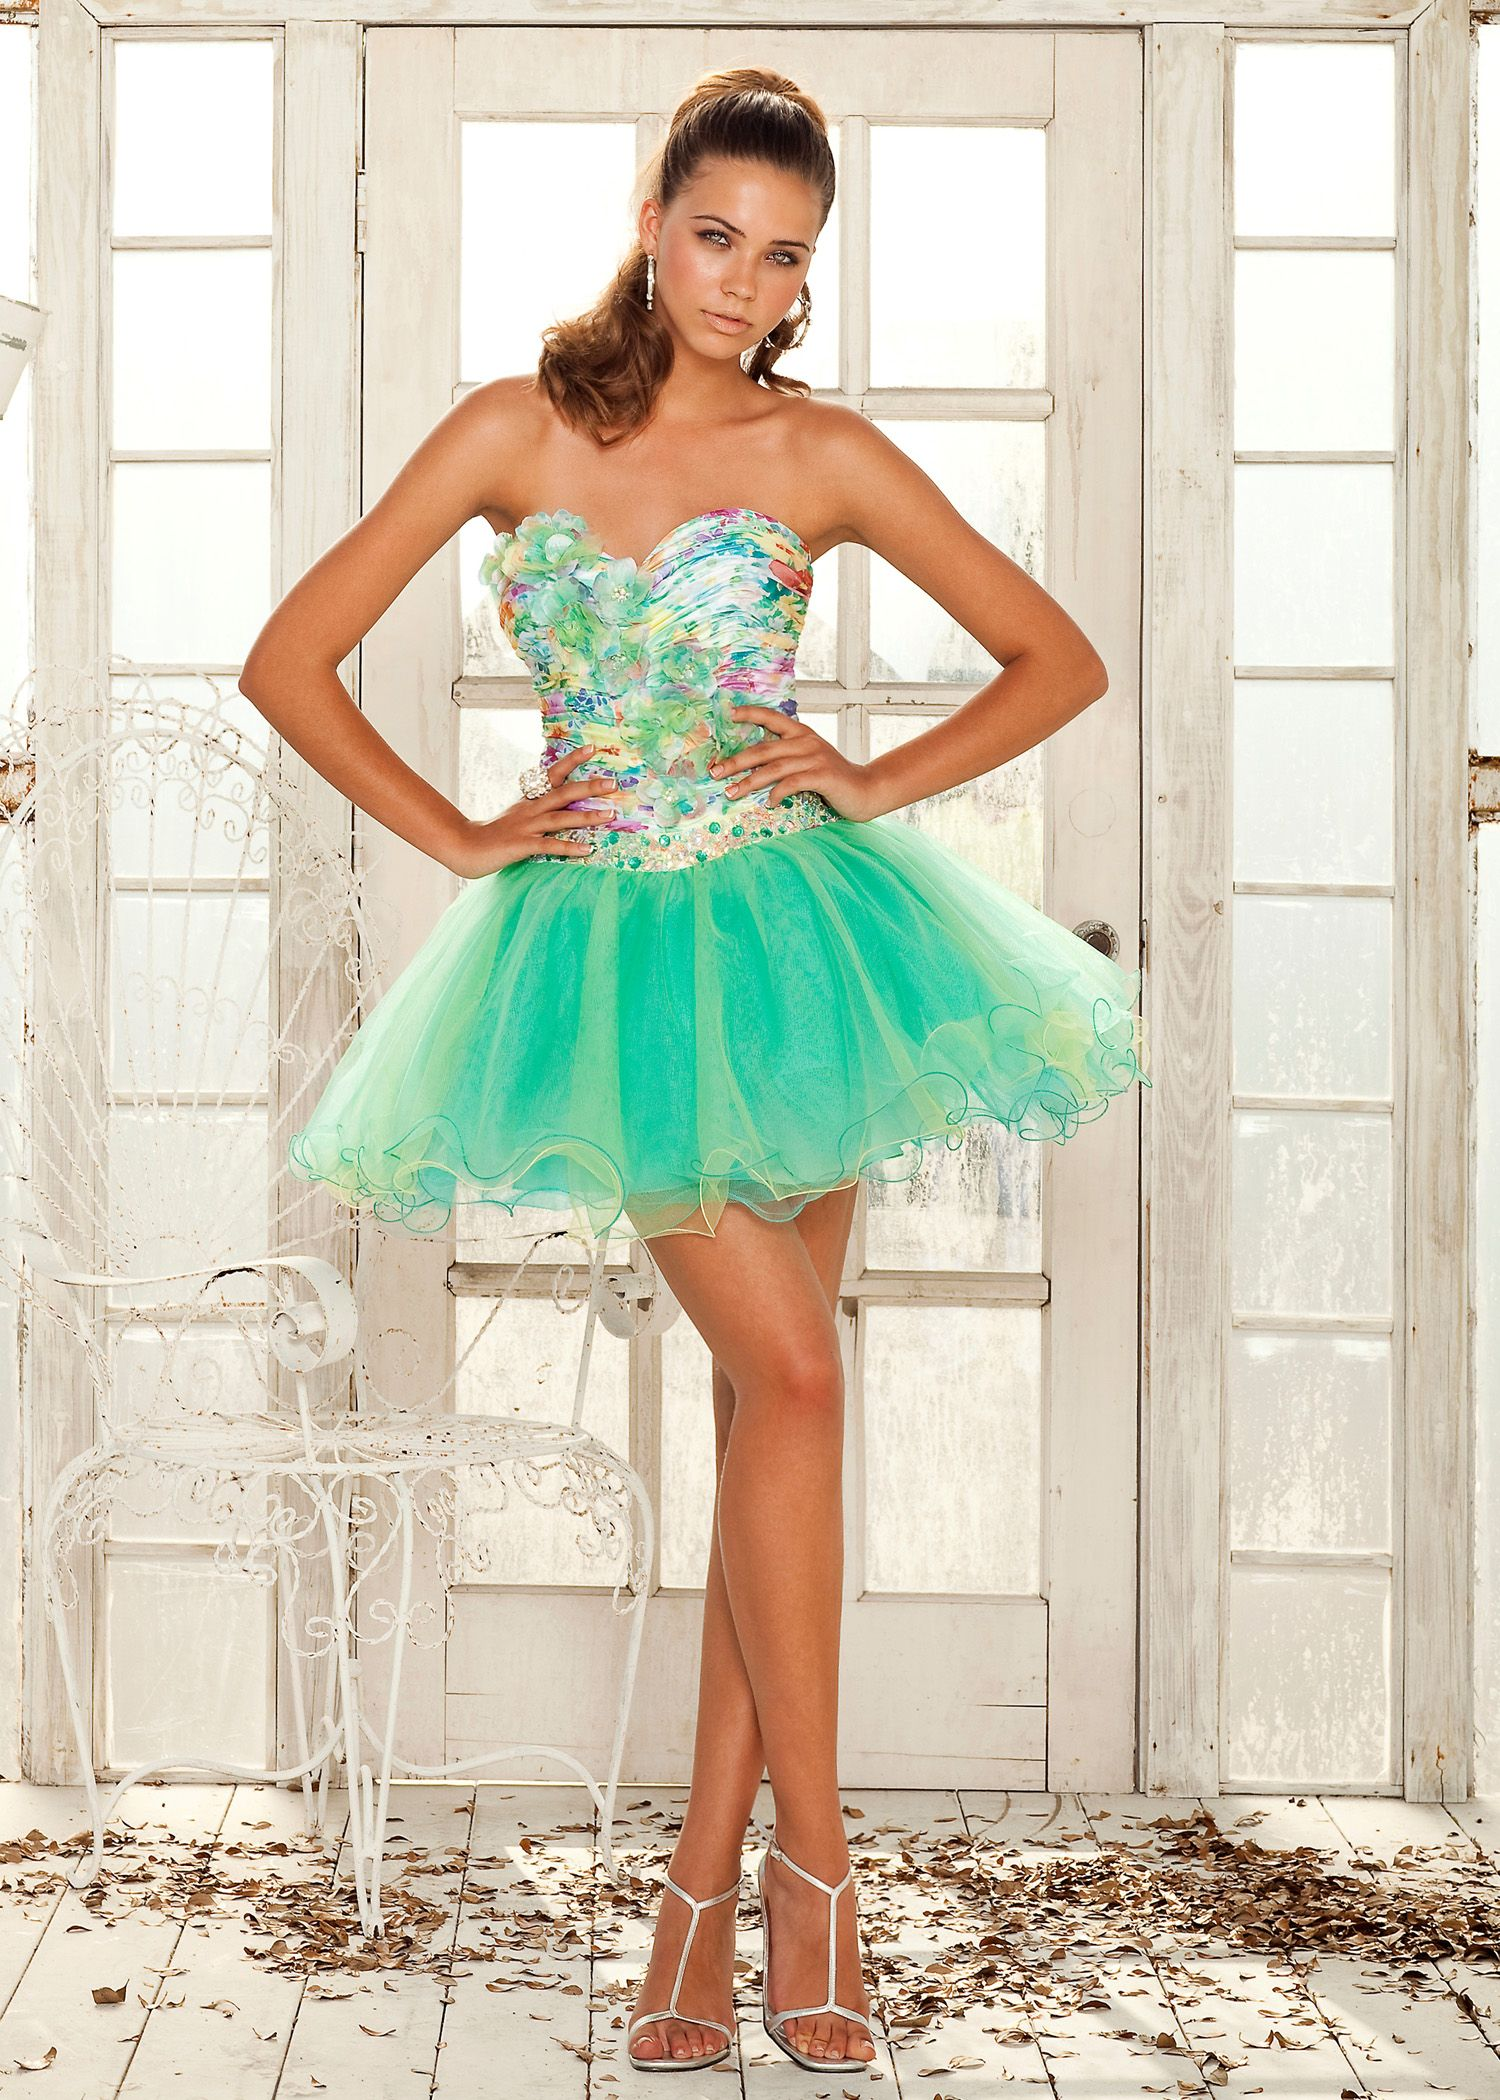 Another possible prom dress. It really comes off as hideous though ...